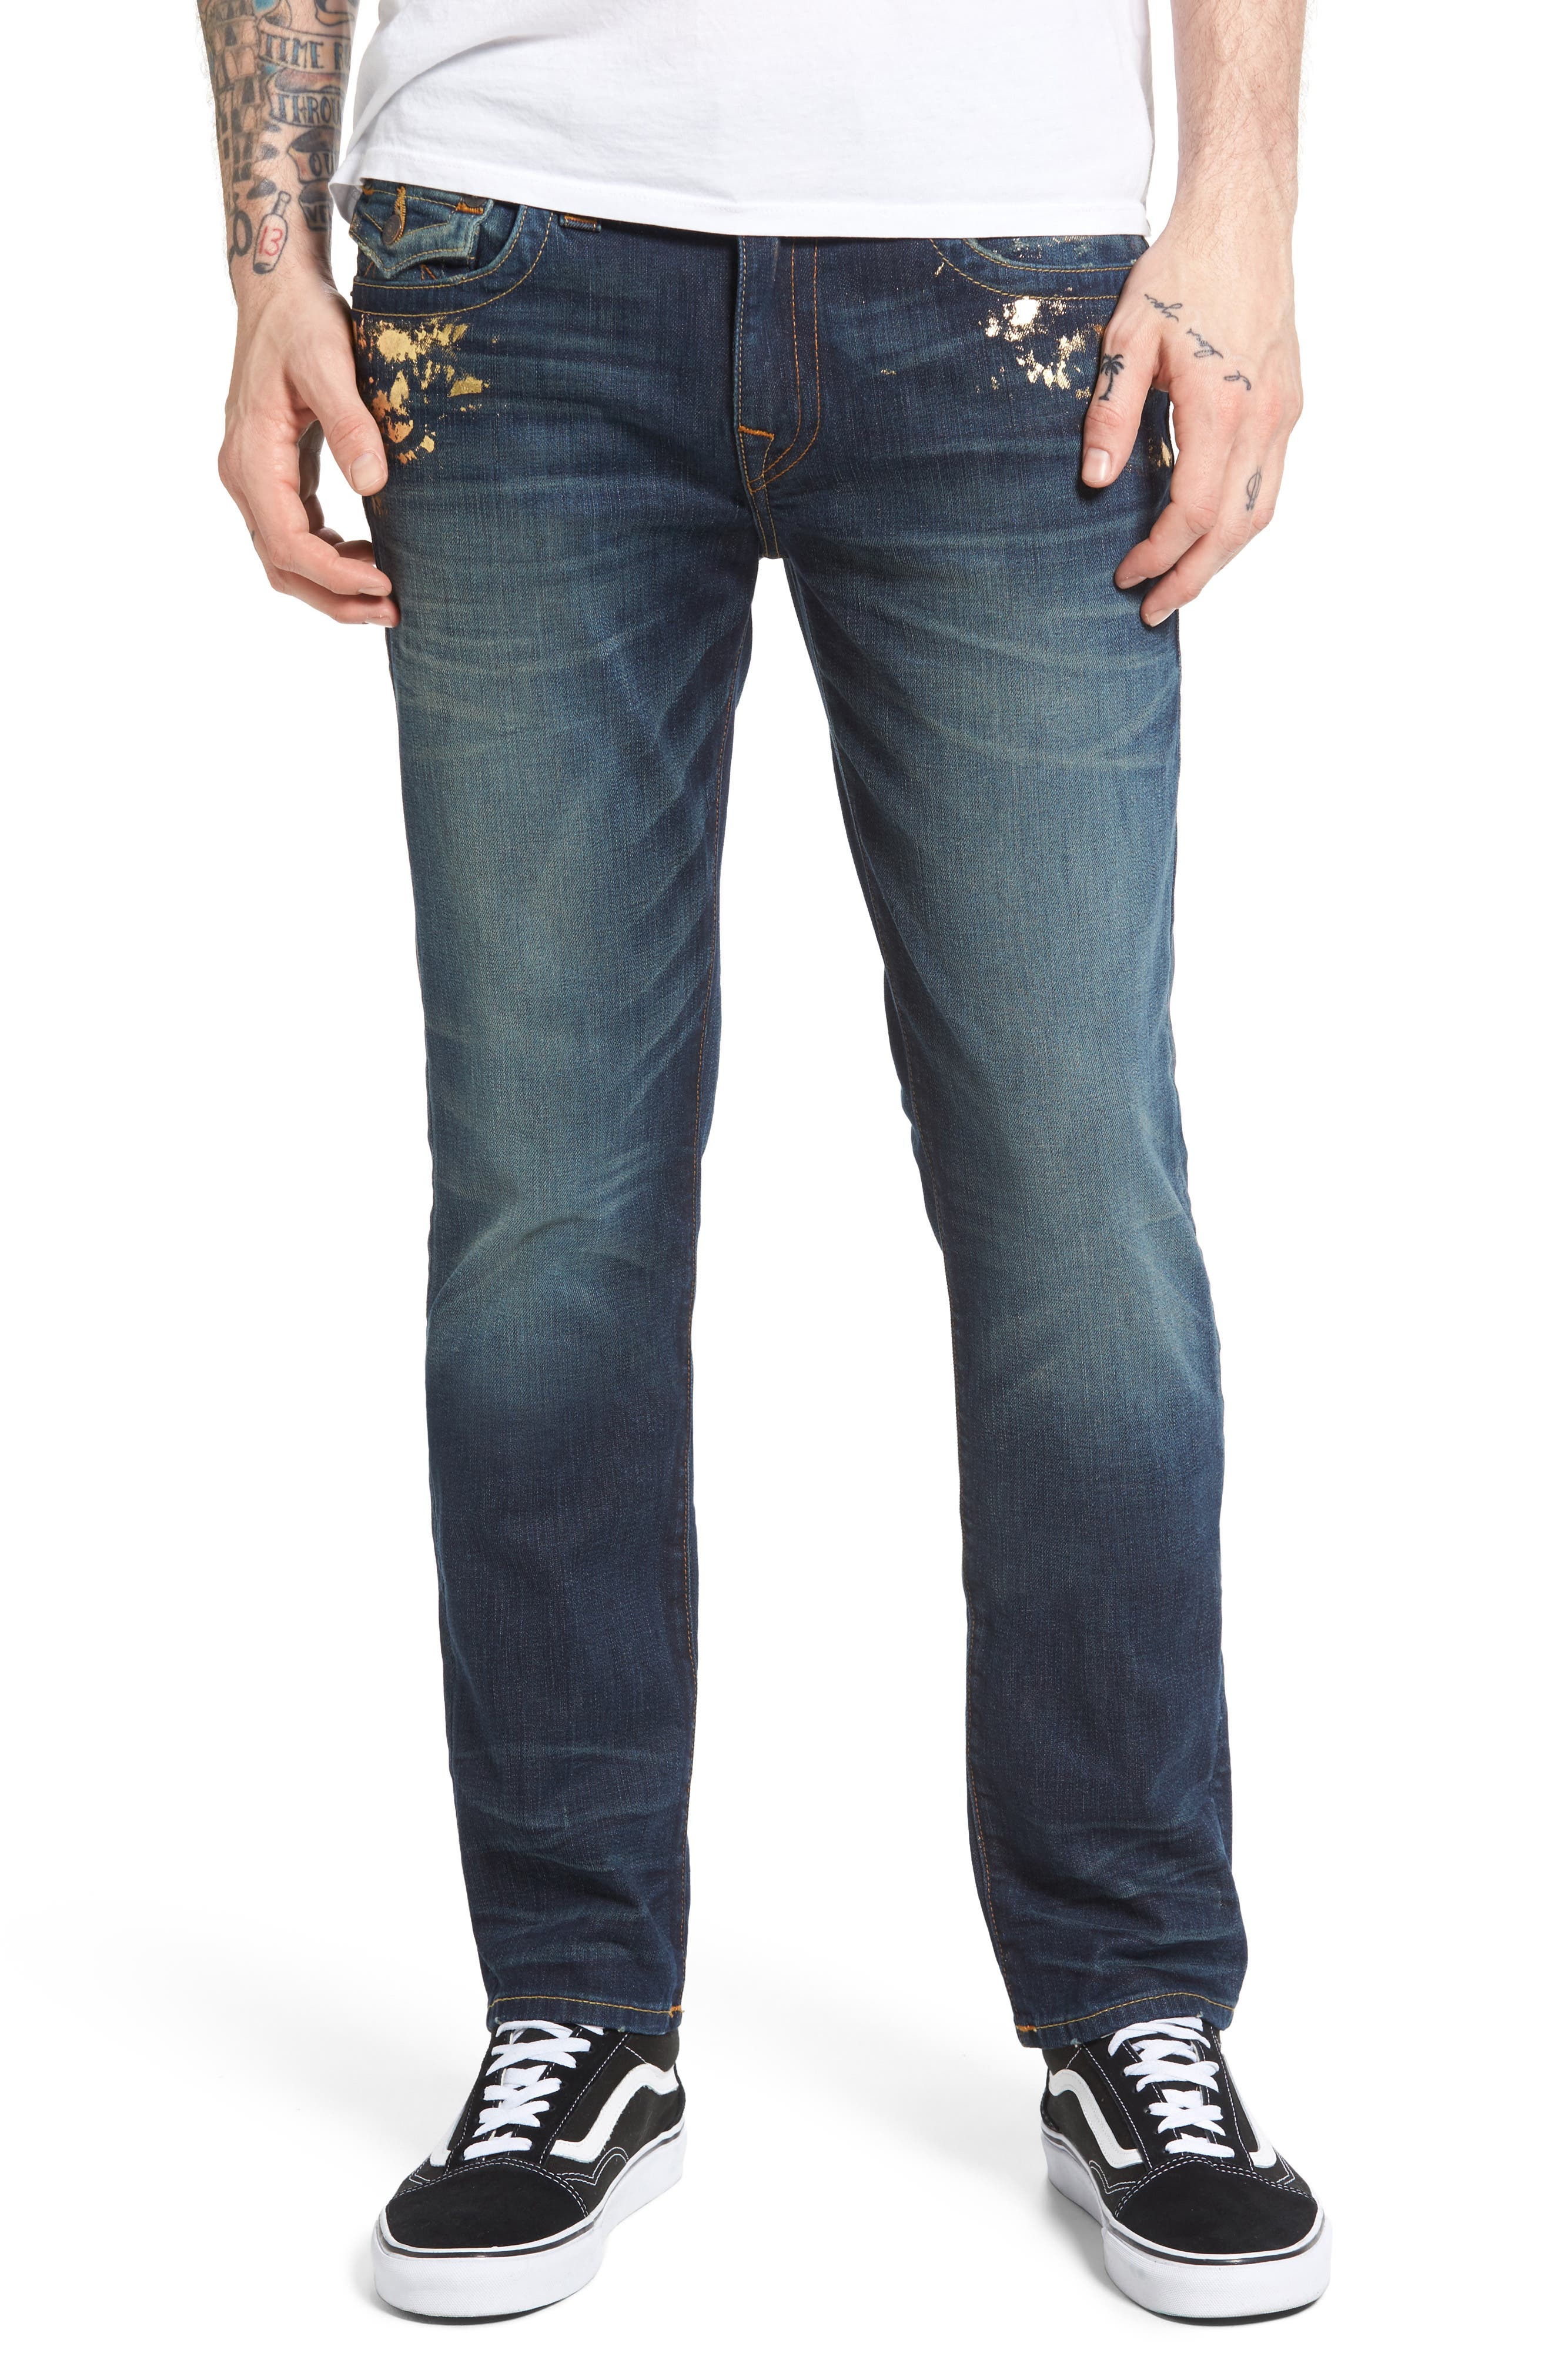 True Religion Brand Jeans Geno Straight Leg Jeans (Golden Dweller)